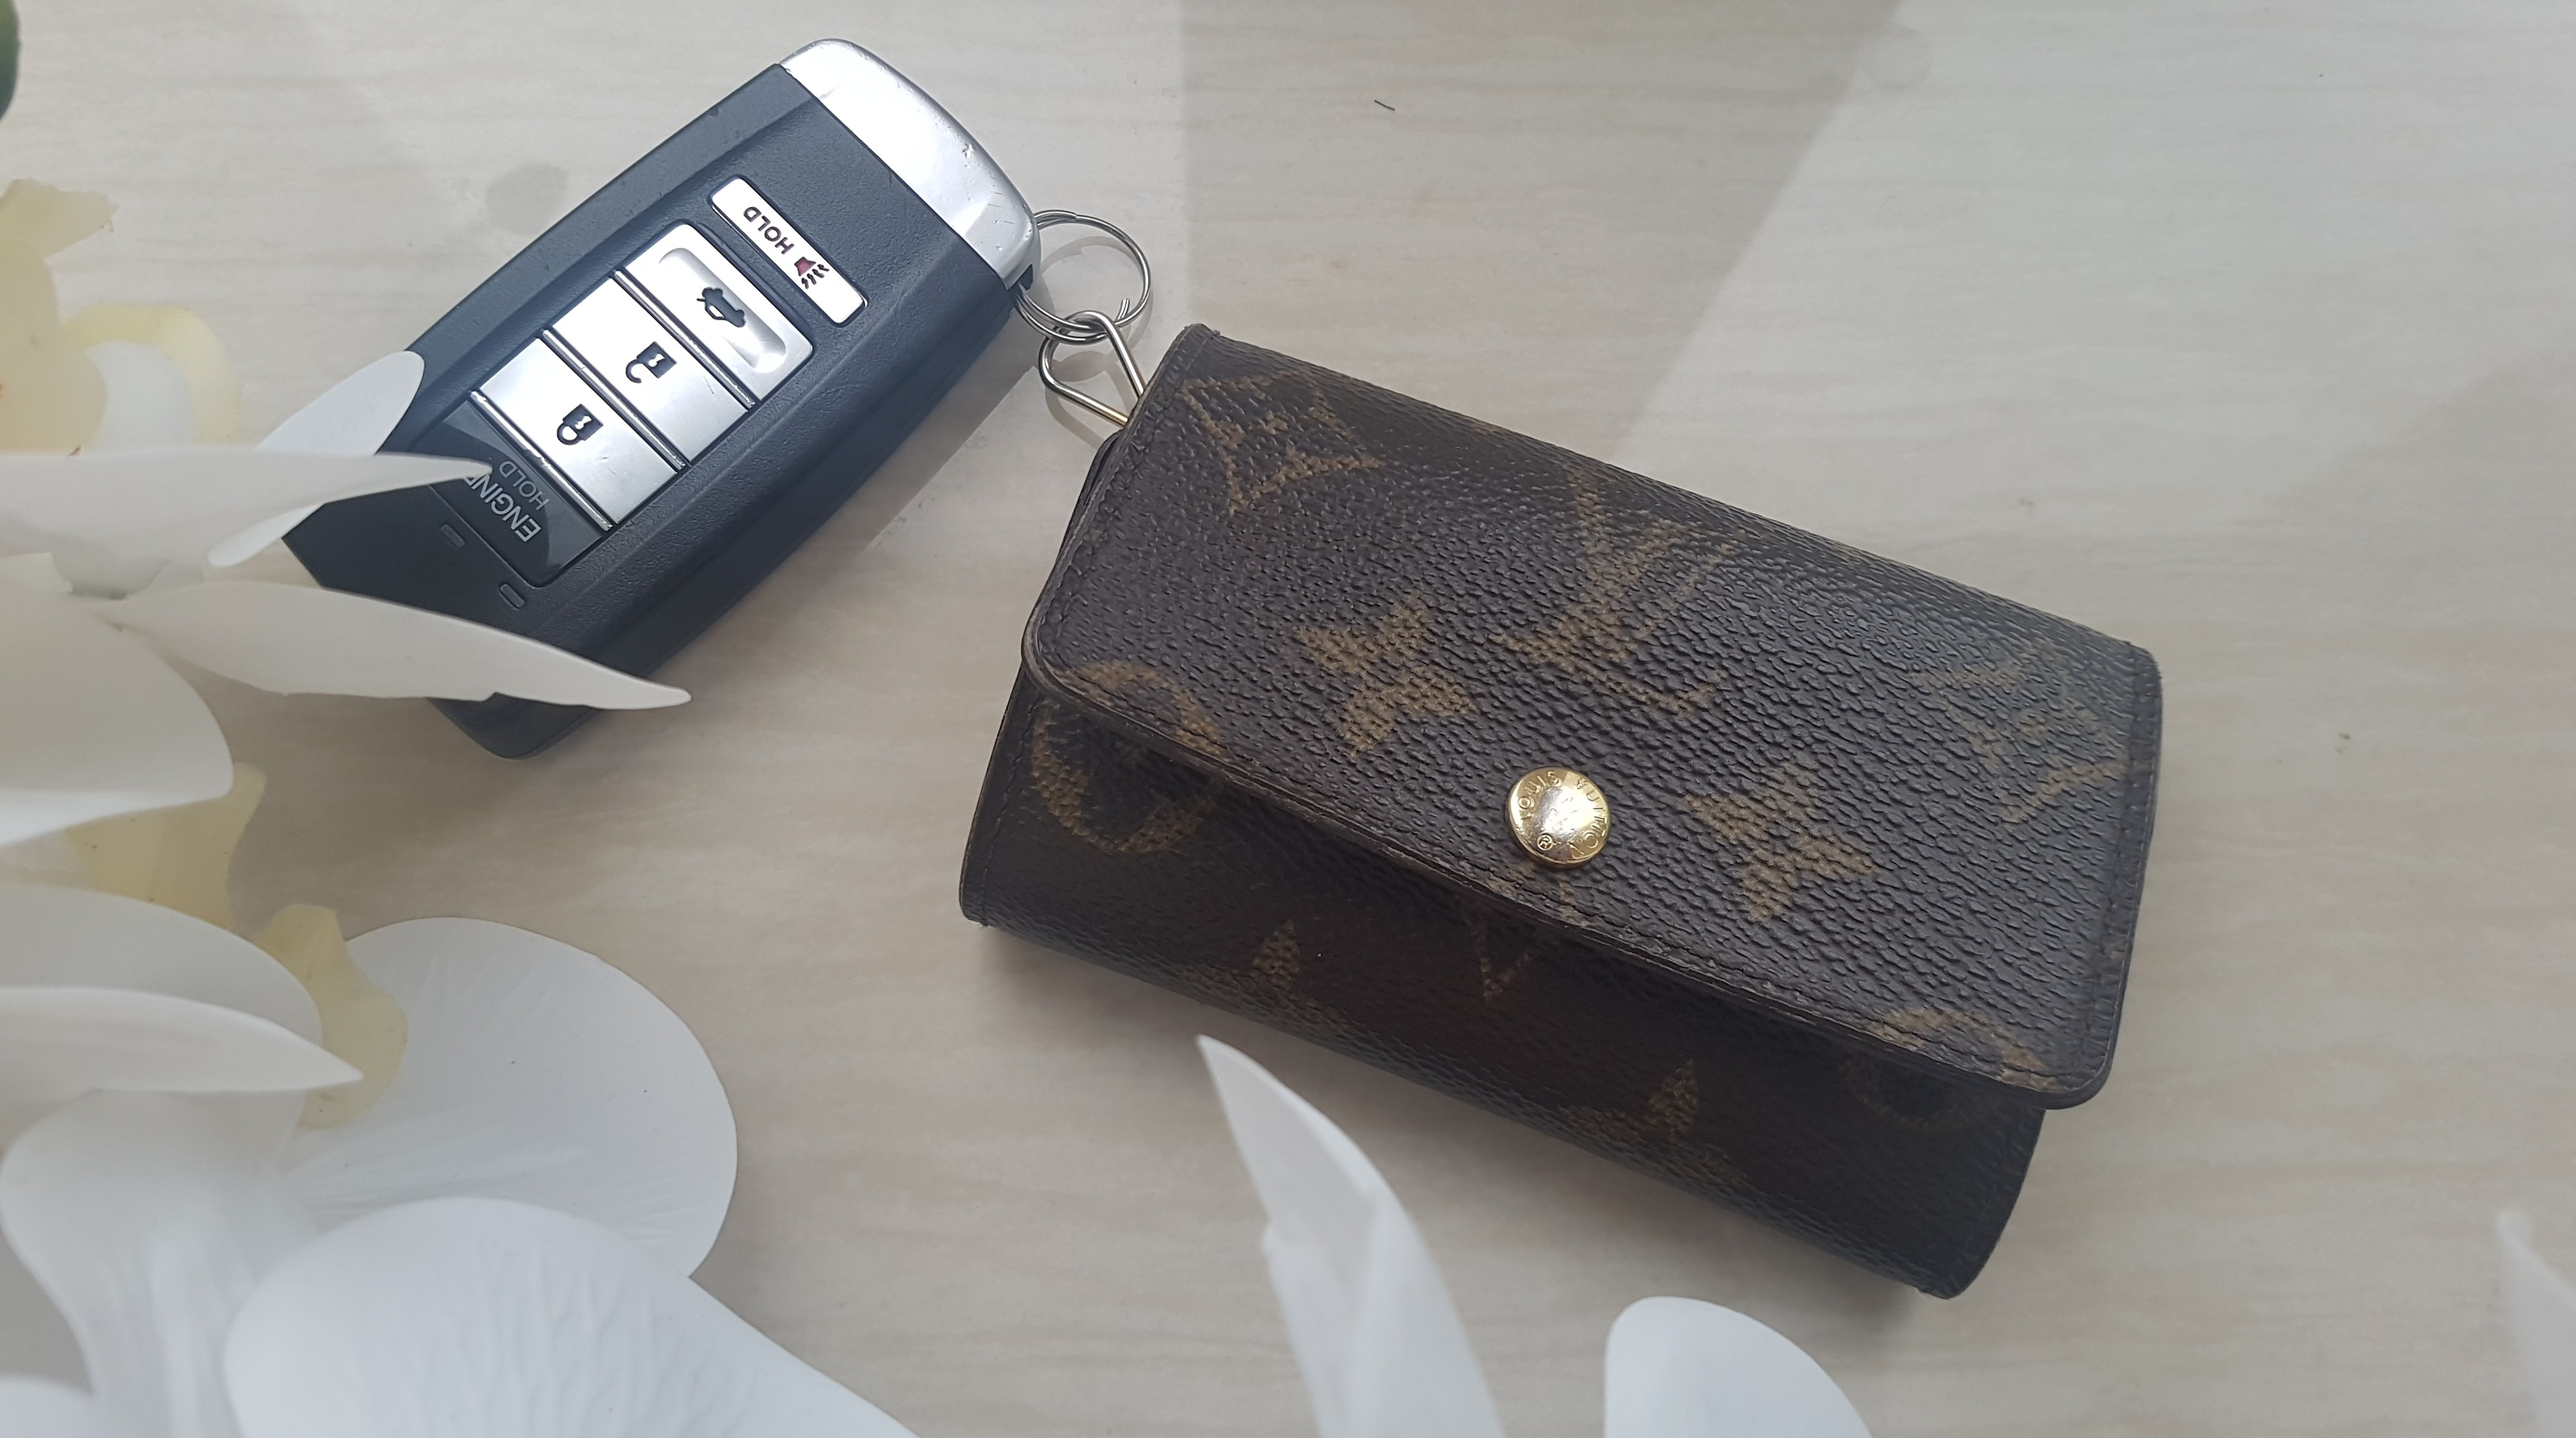 92a9c876 Review: Louis Vuitton 6 Key Holder – Simply Caffeinated